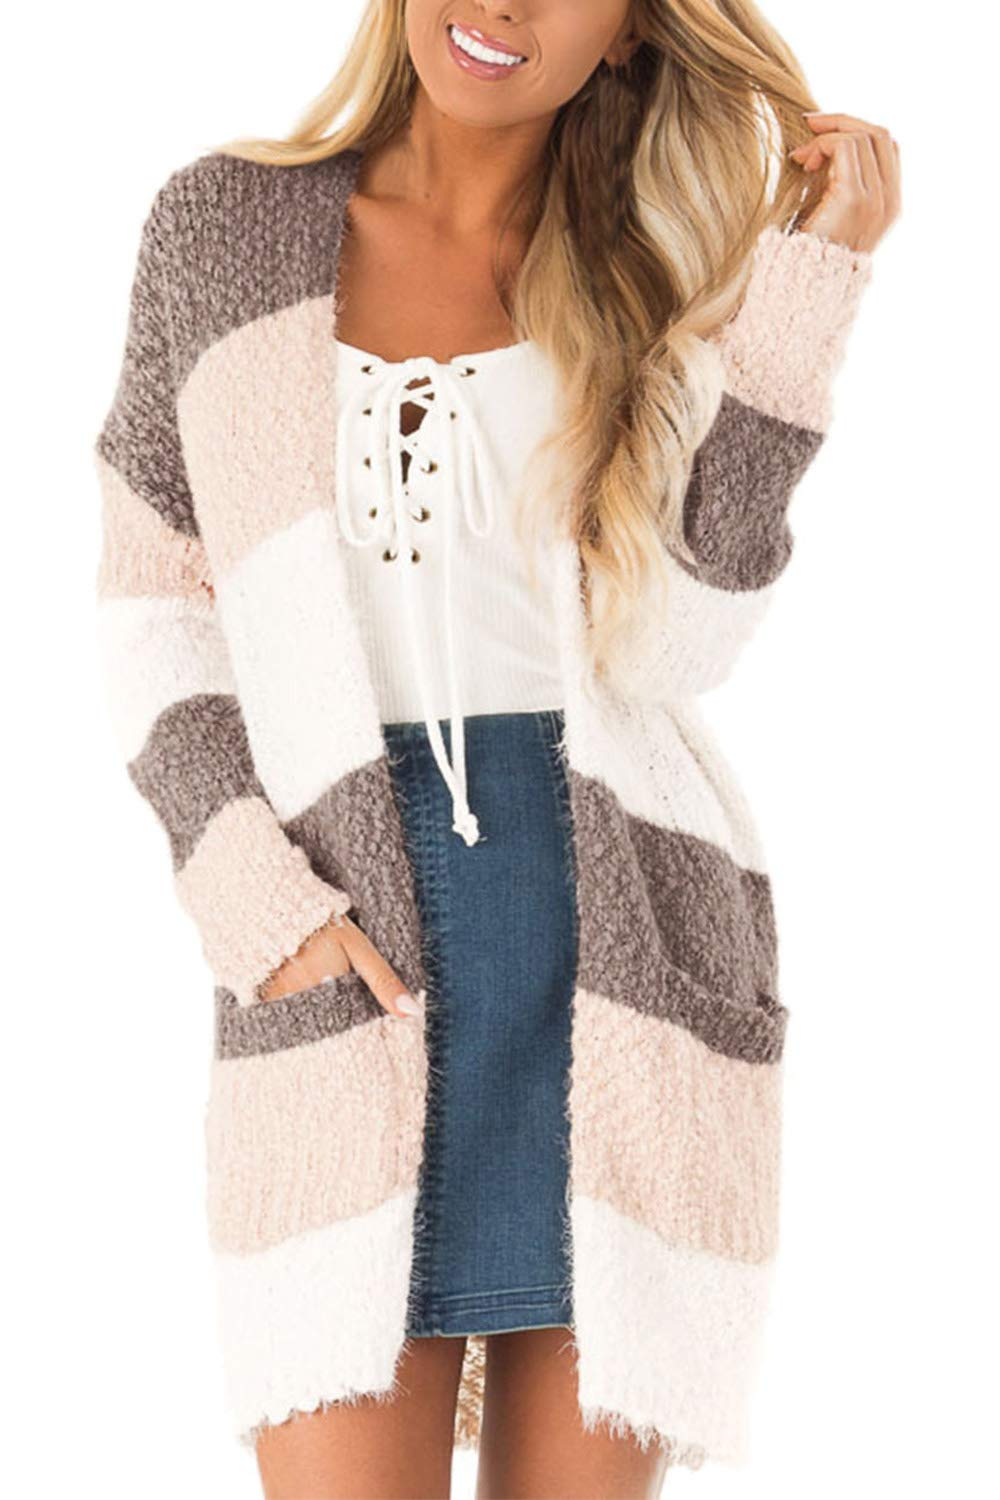 COCOLEGGINGS Women's Color Block Drape Oversized Knitted Cardigan Sweaters